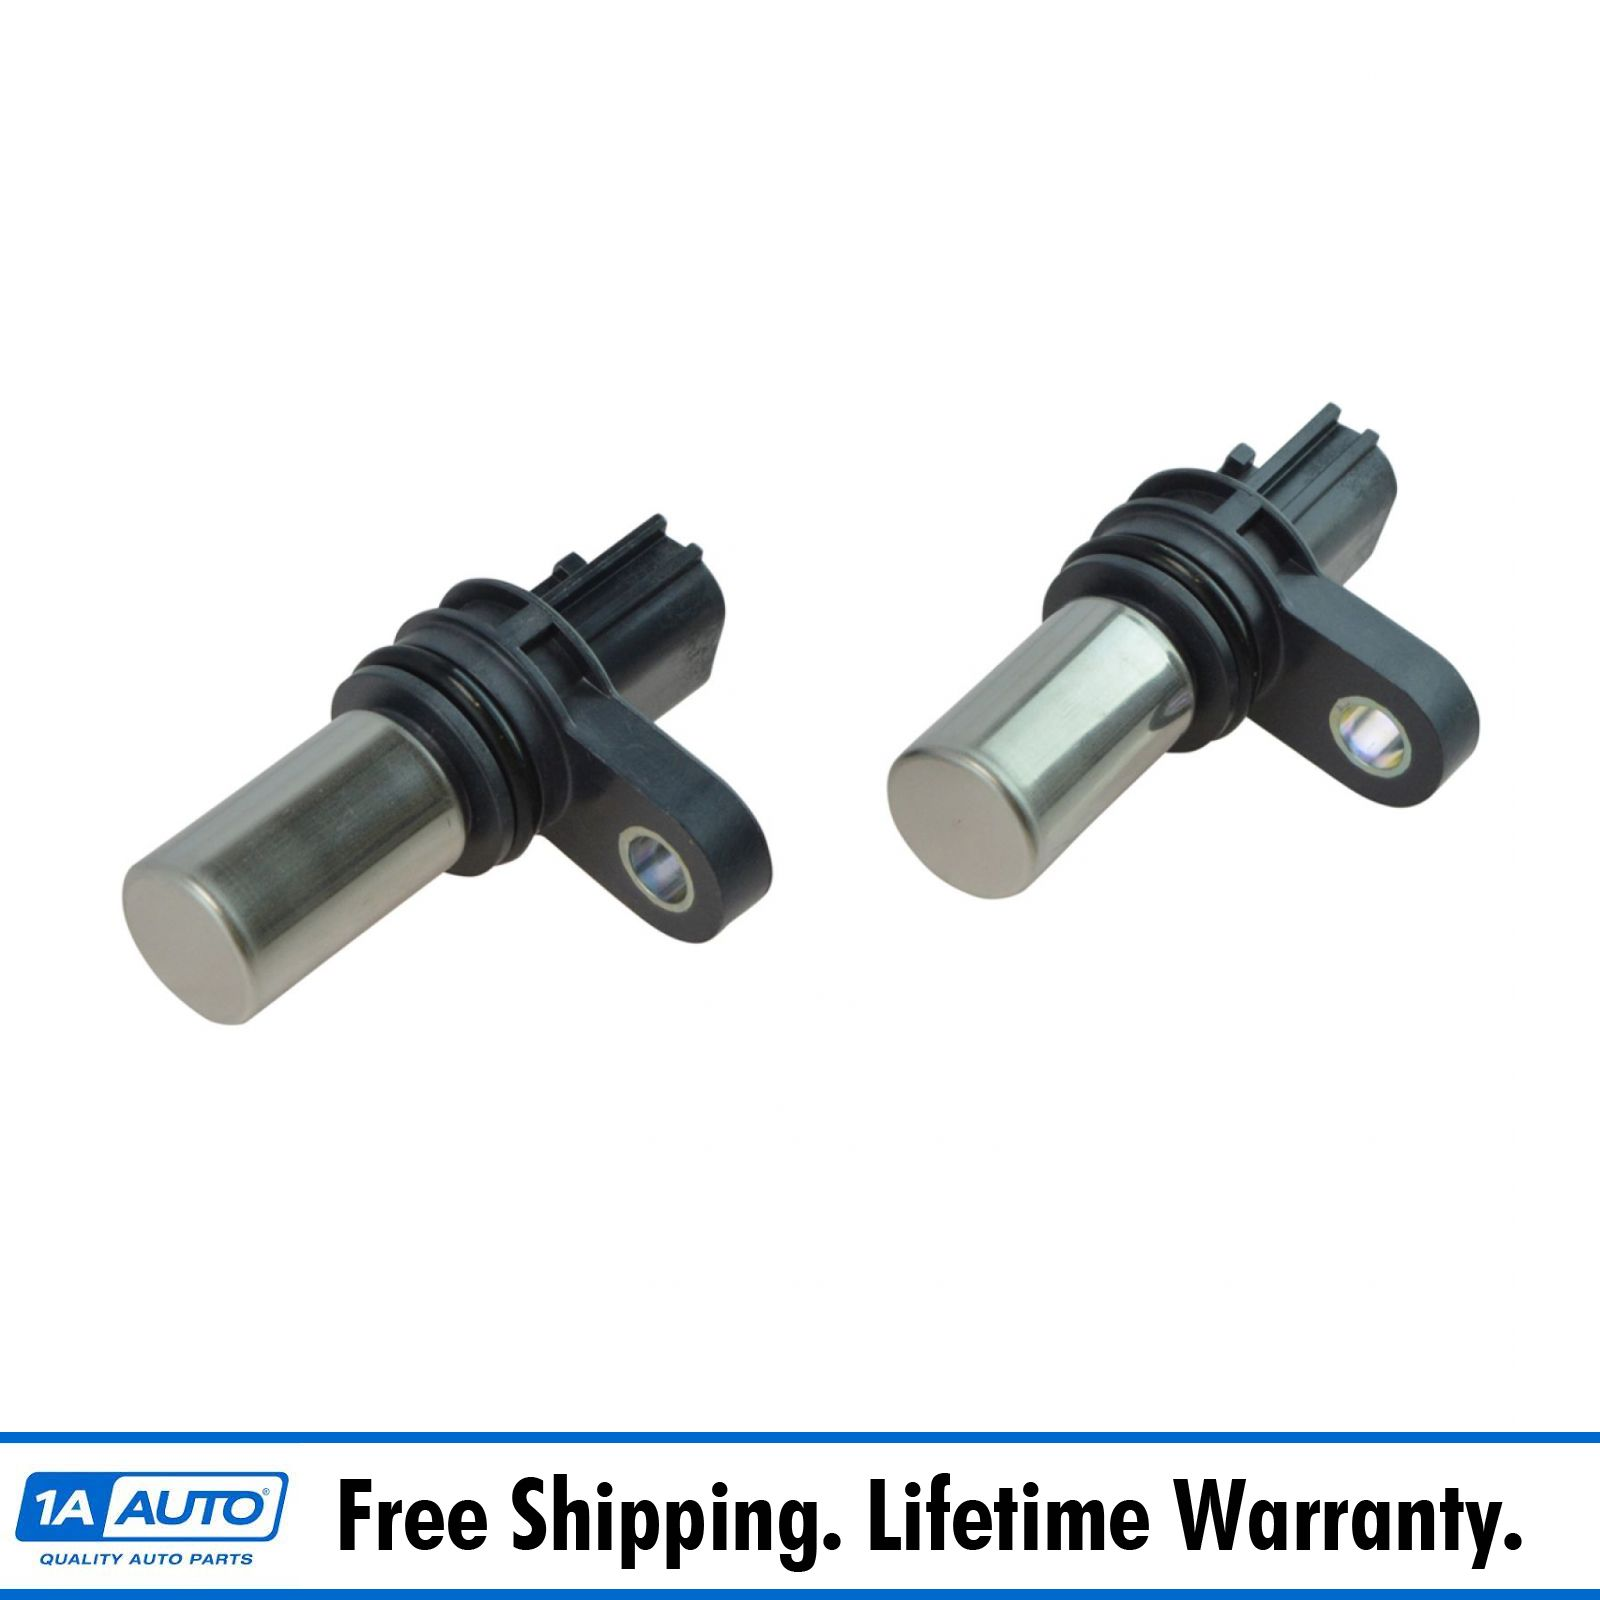 OEM Camshaft Crankshaft Position Sensor Kit For Nissan